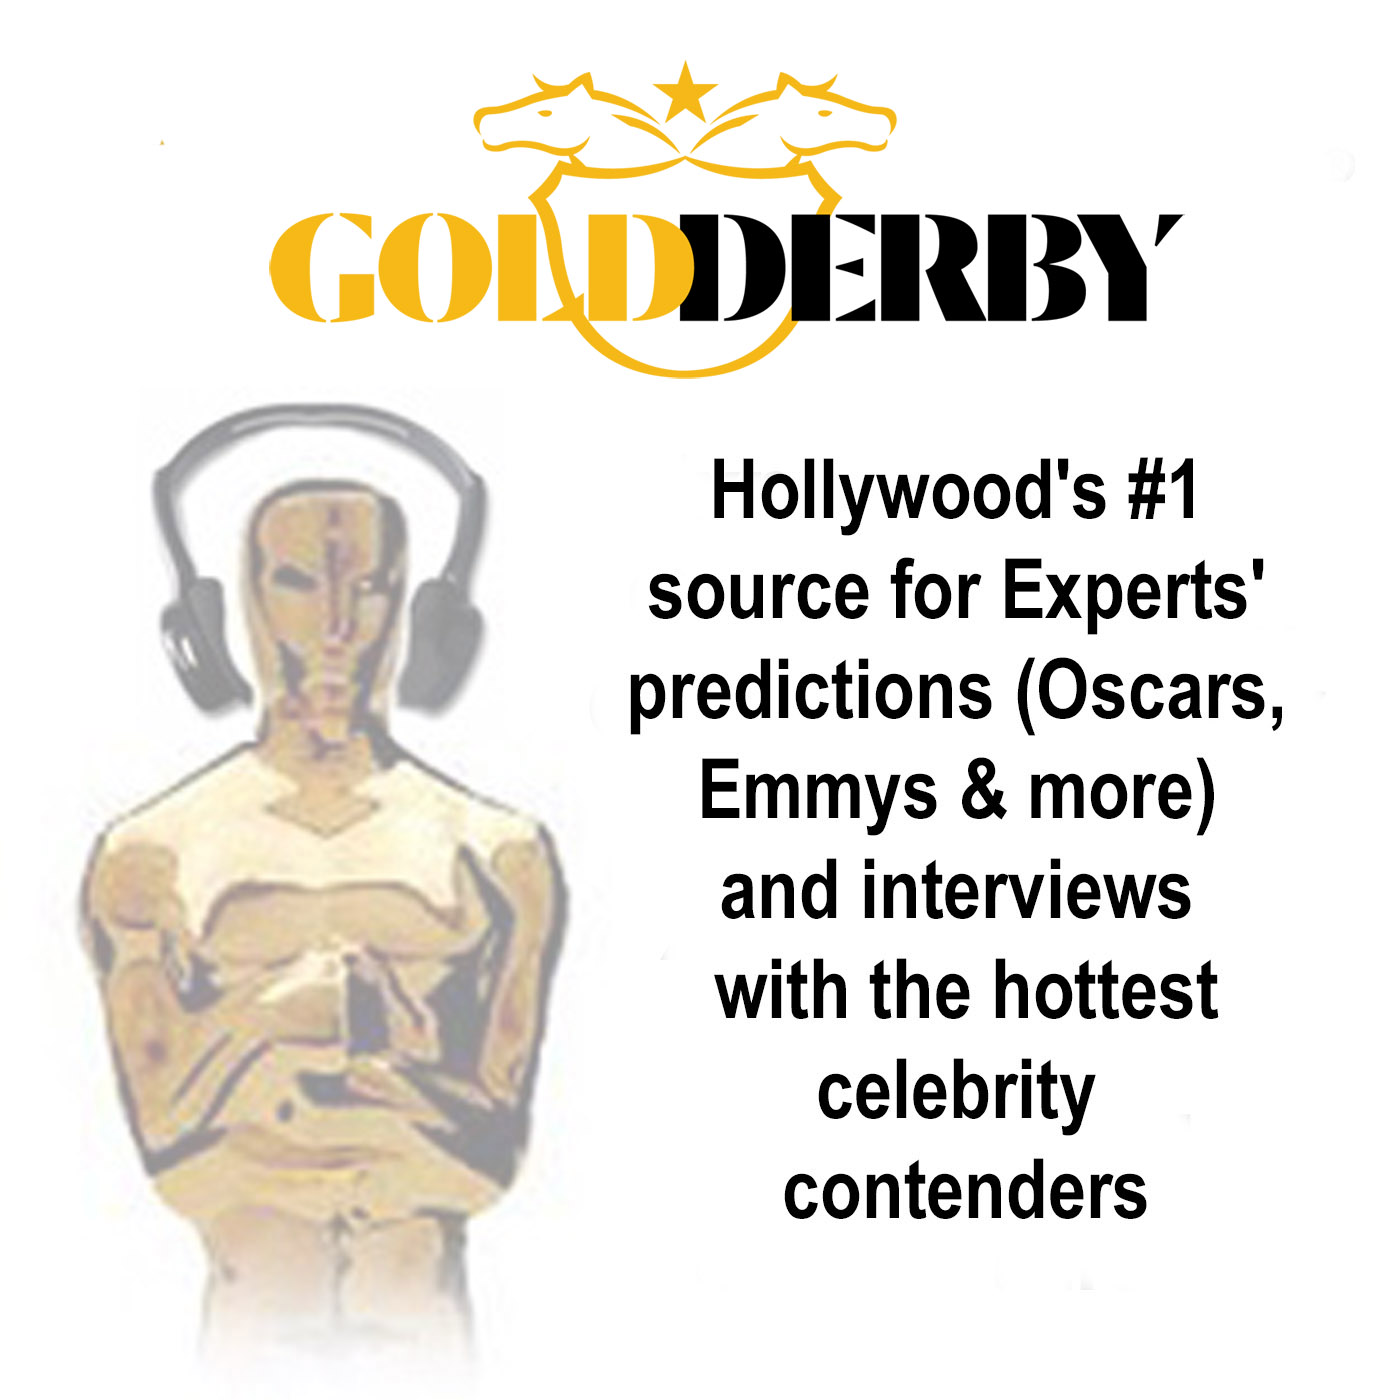 3 Oscar Experts' predictions slamdown: Best Picture? Actress? [VIDEO